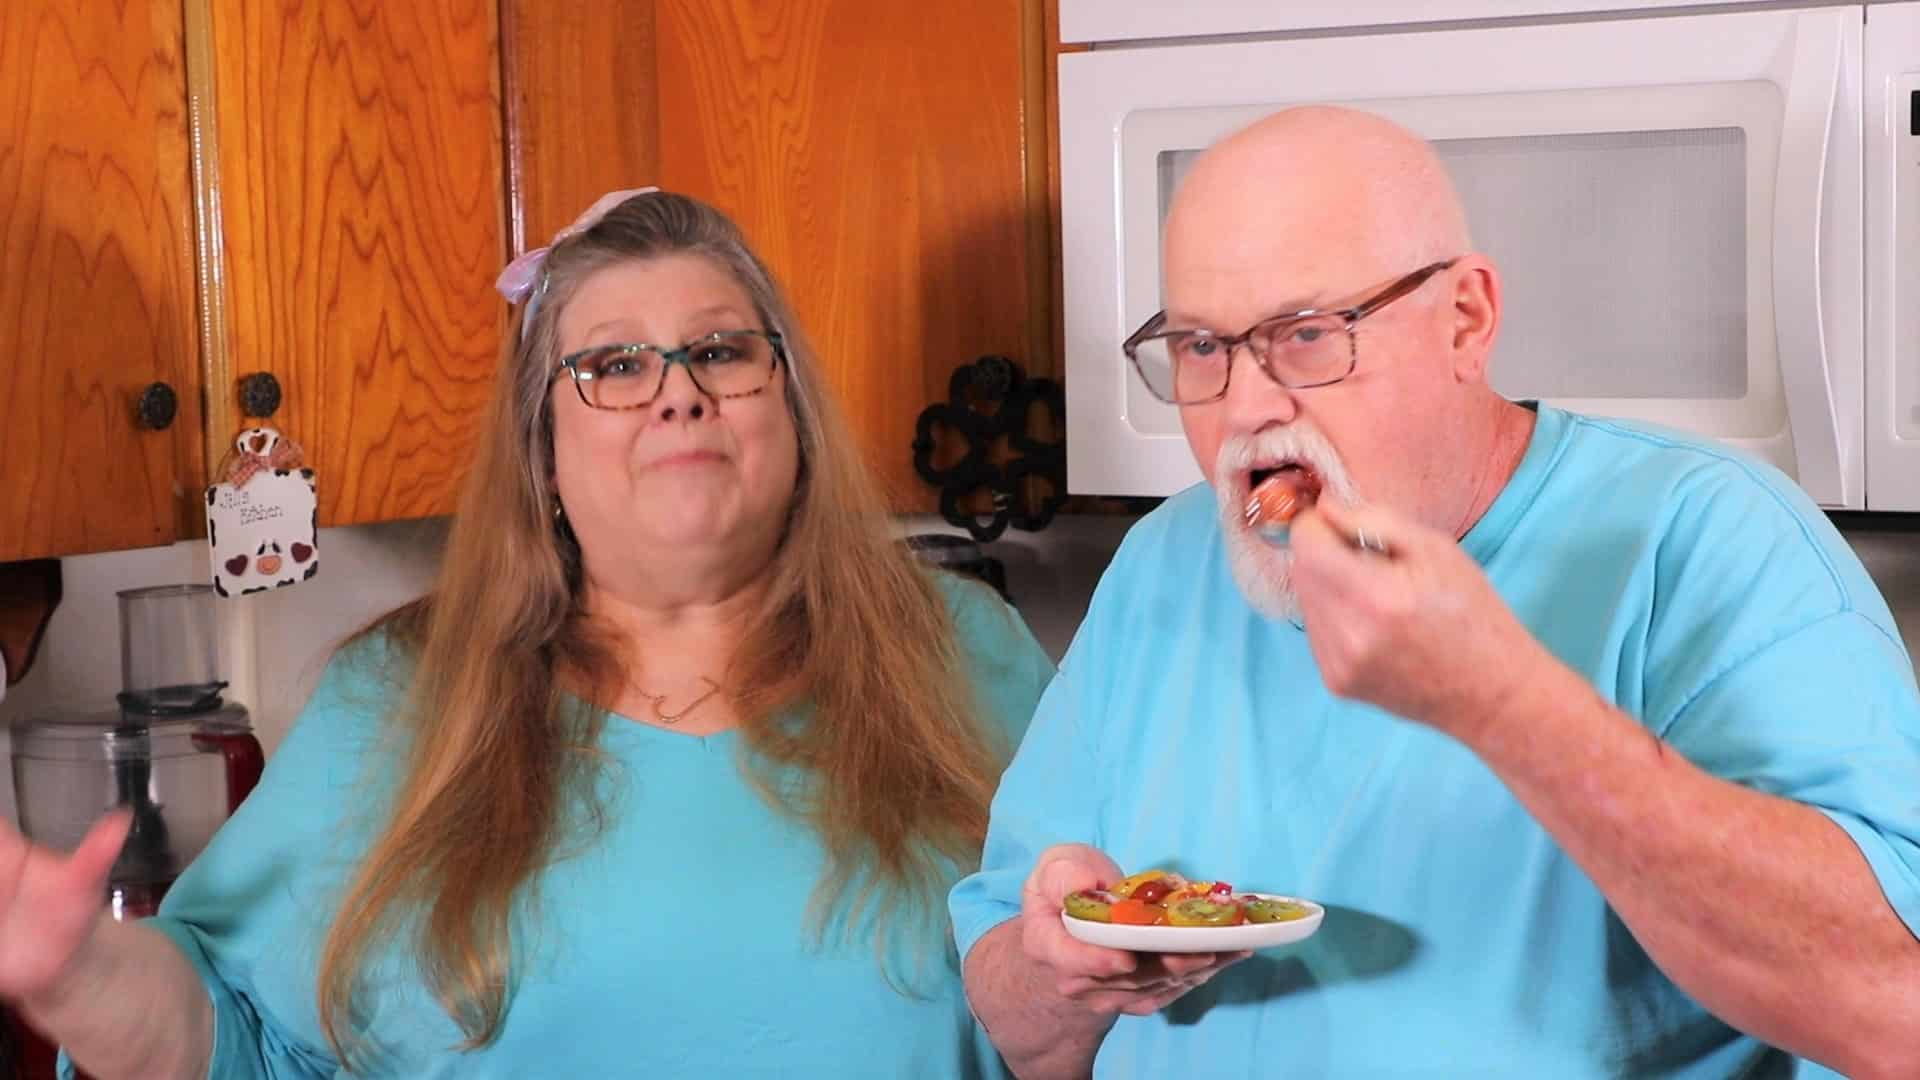 Jill and Ed wearing blue shirts standing in front of microwave in kitchen holding a plate of tomato salad and Ed is using a fork to have a taste.